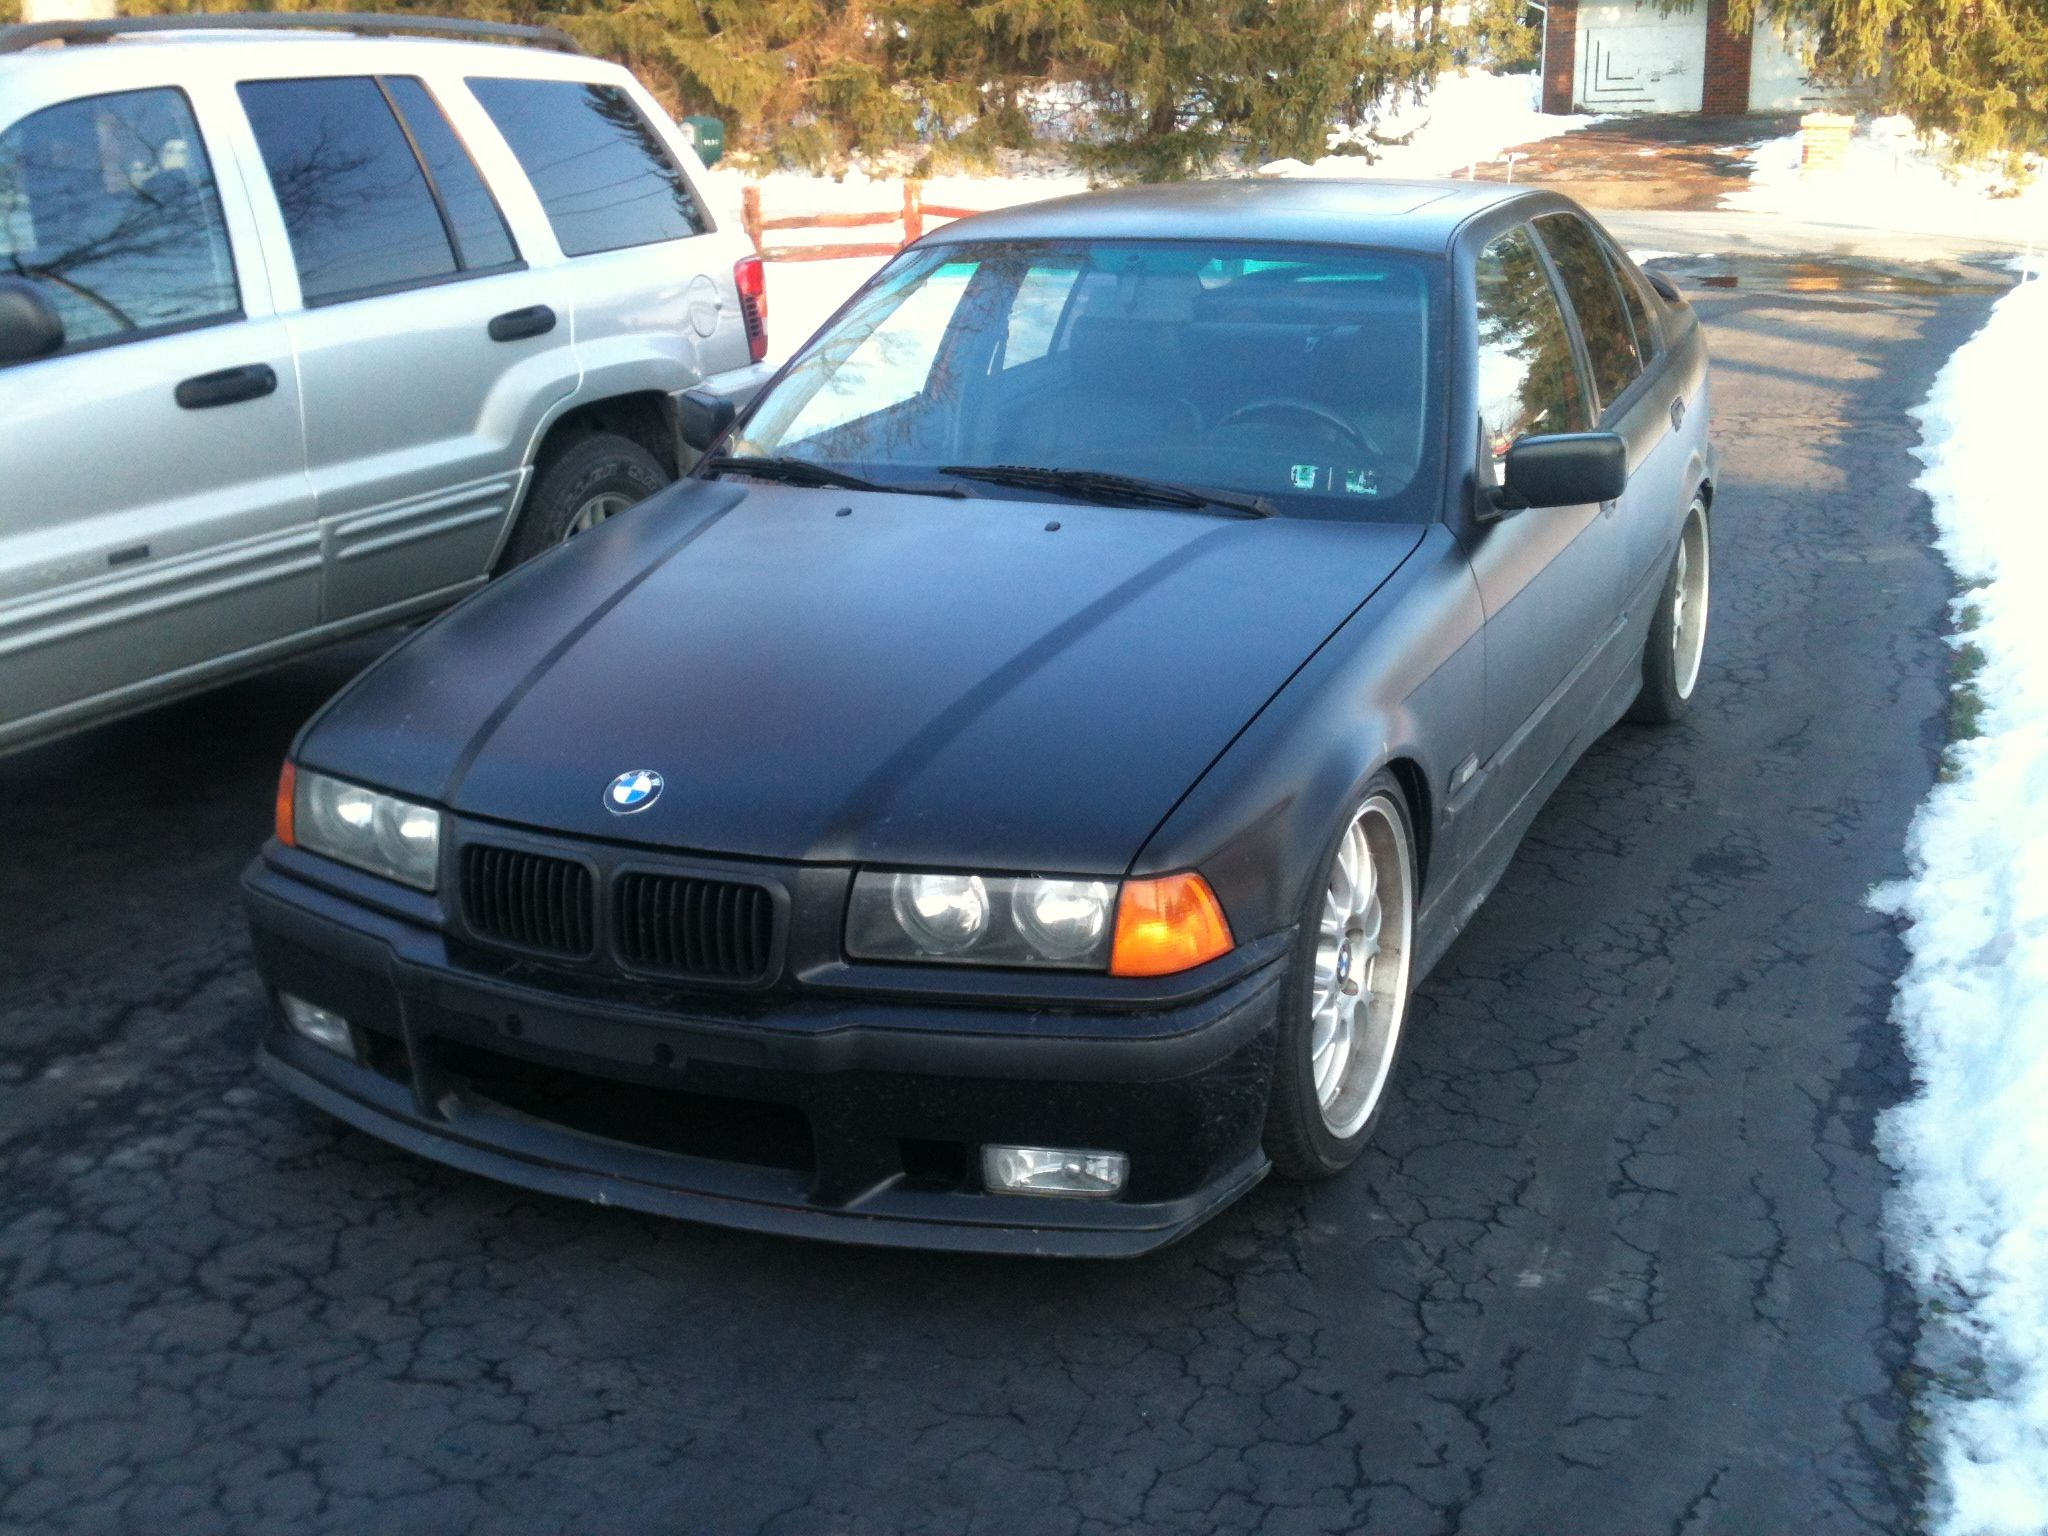 BMW E36 ford 5 0L V8 swap  | BMW 5 0 V8 Project | Bmw e36, BMW, BMW